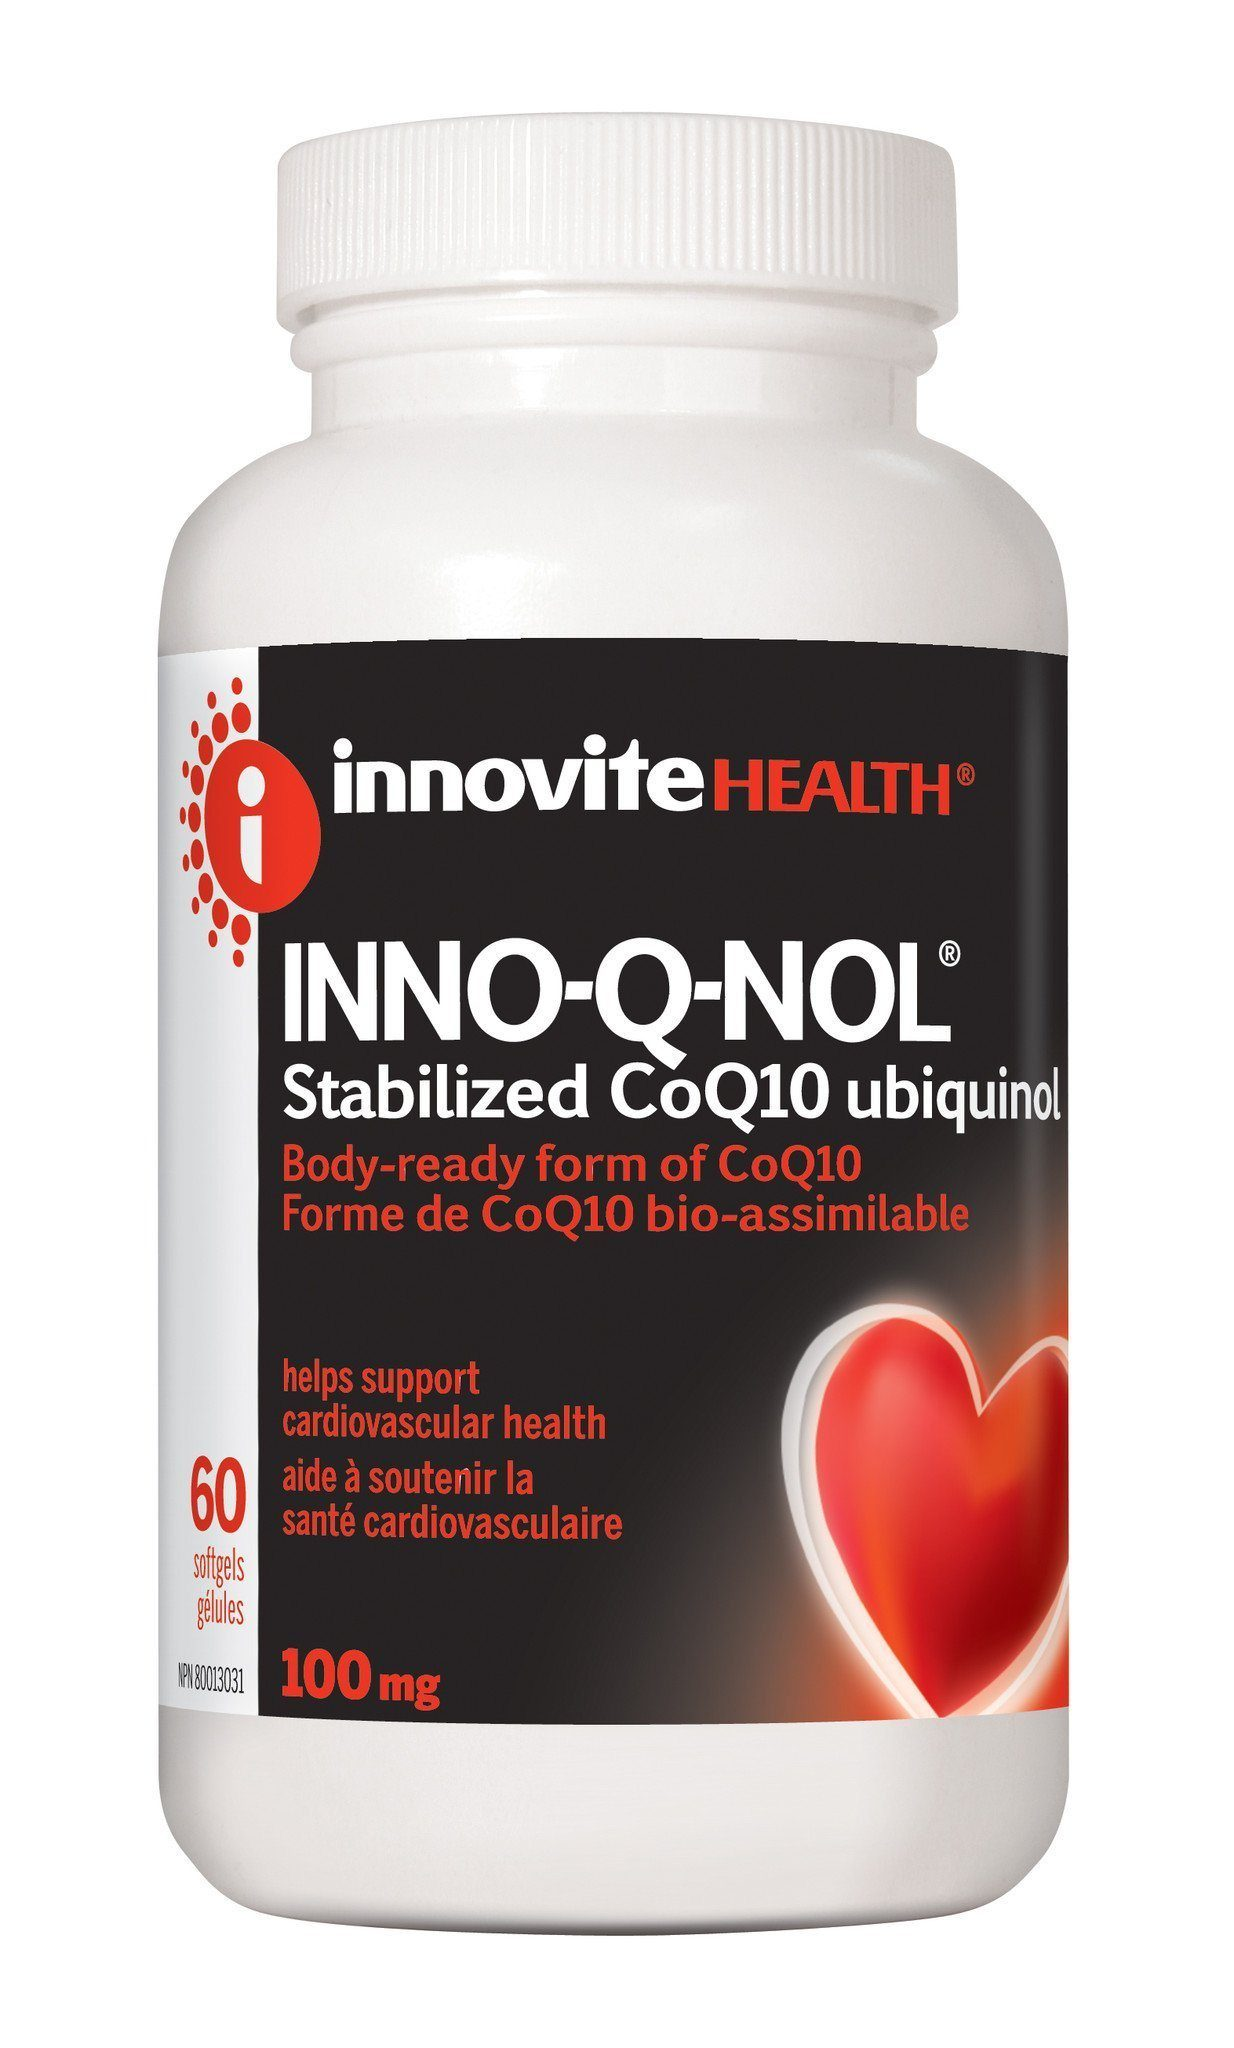 Supplements & Vitamins - Inno-Vite - Inno-Q-Nol 100mg, 60 Softgels